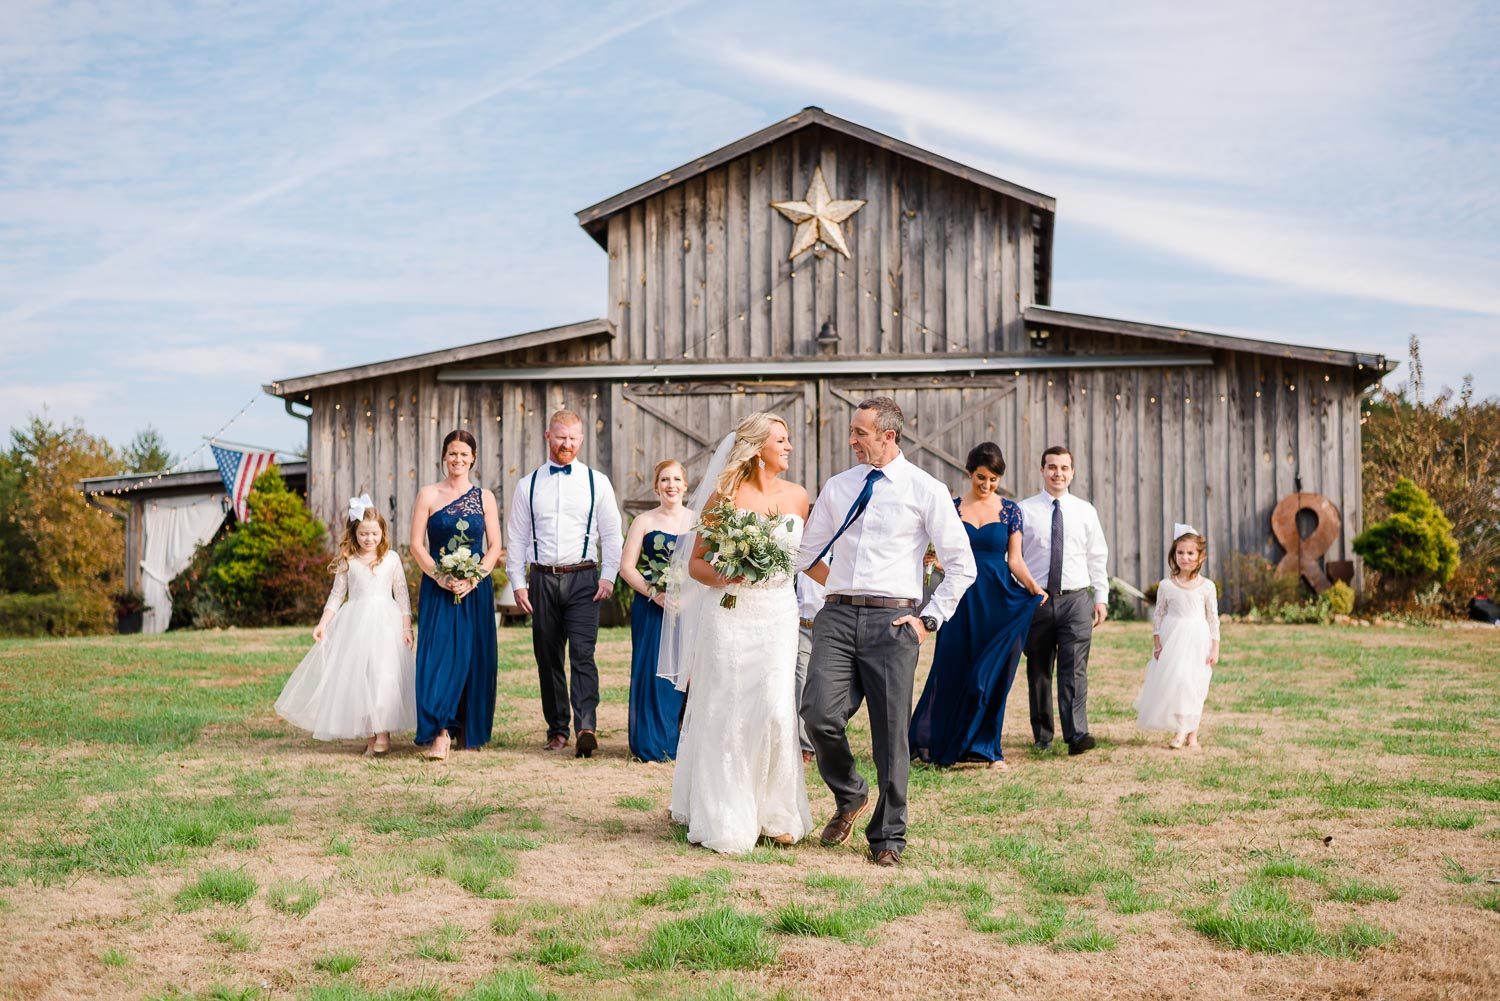 navy and white wedding party in front of rustic Tennessee barn venue